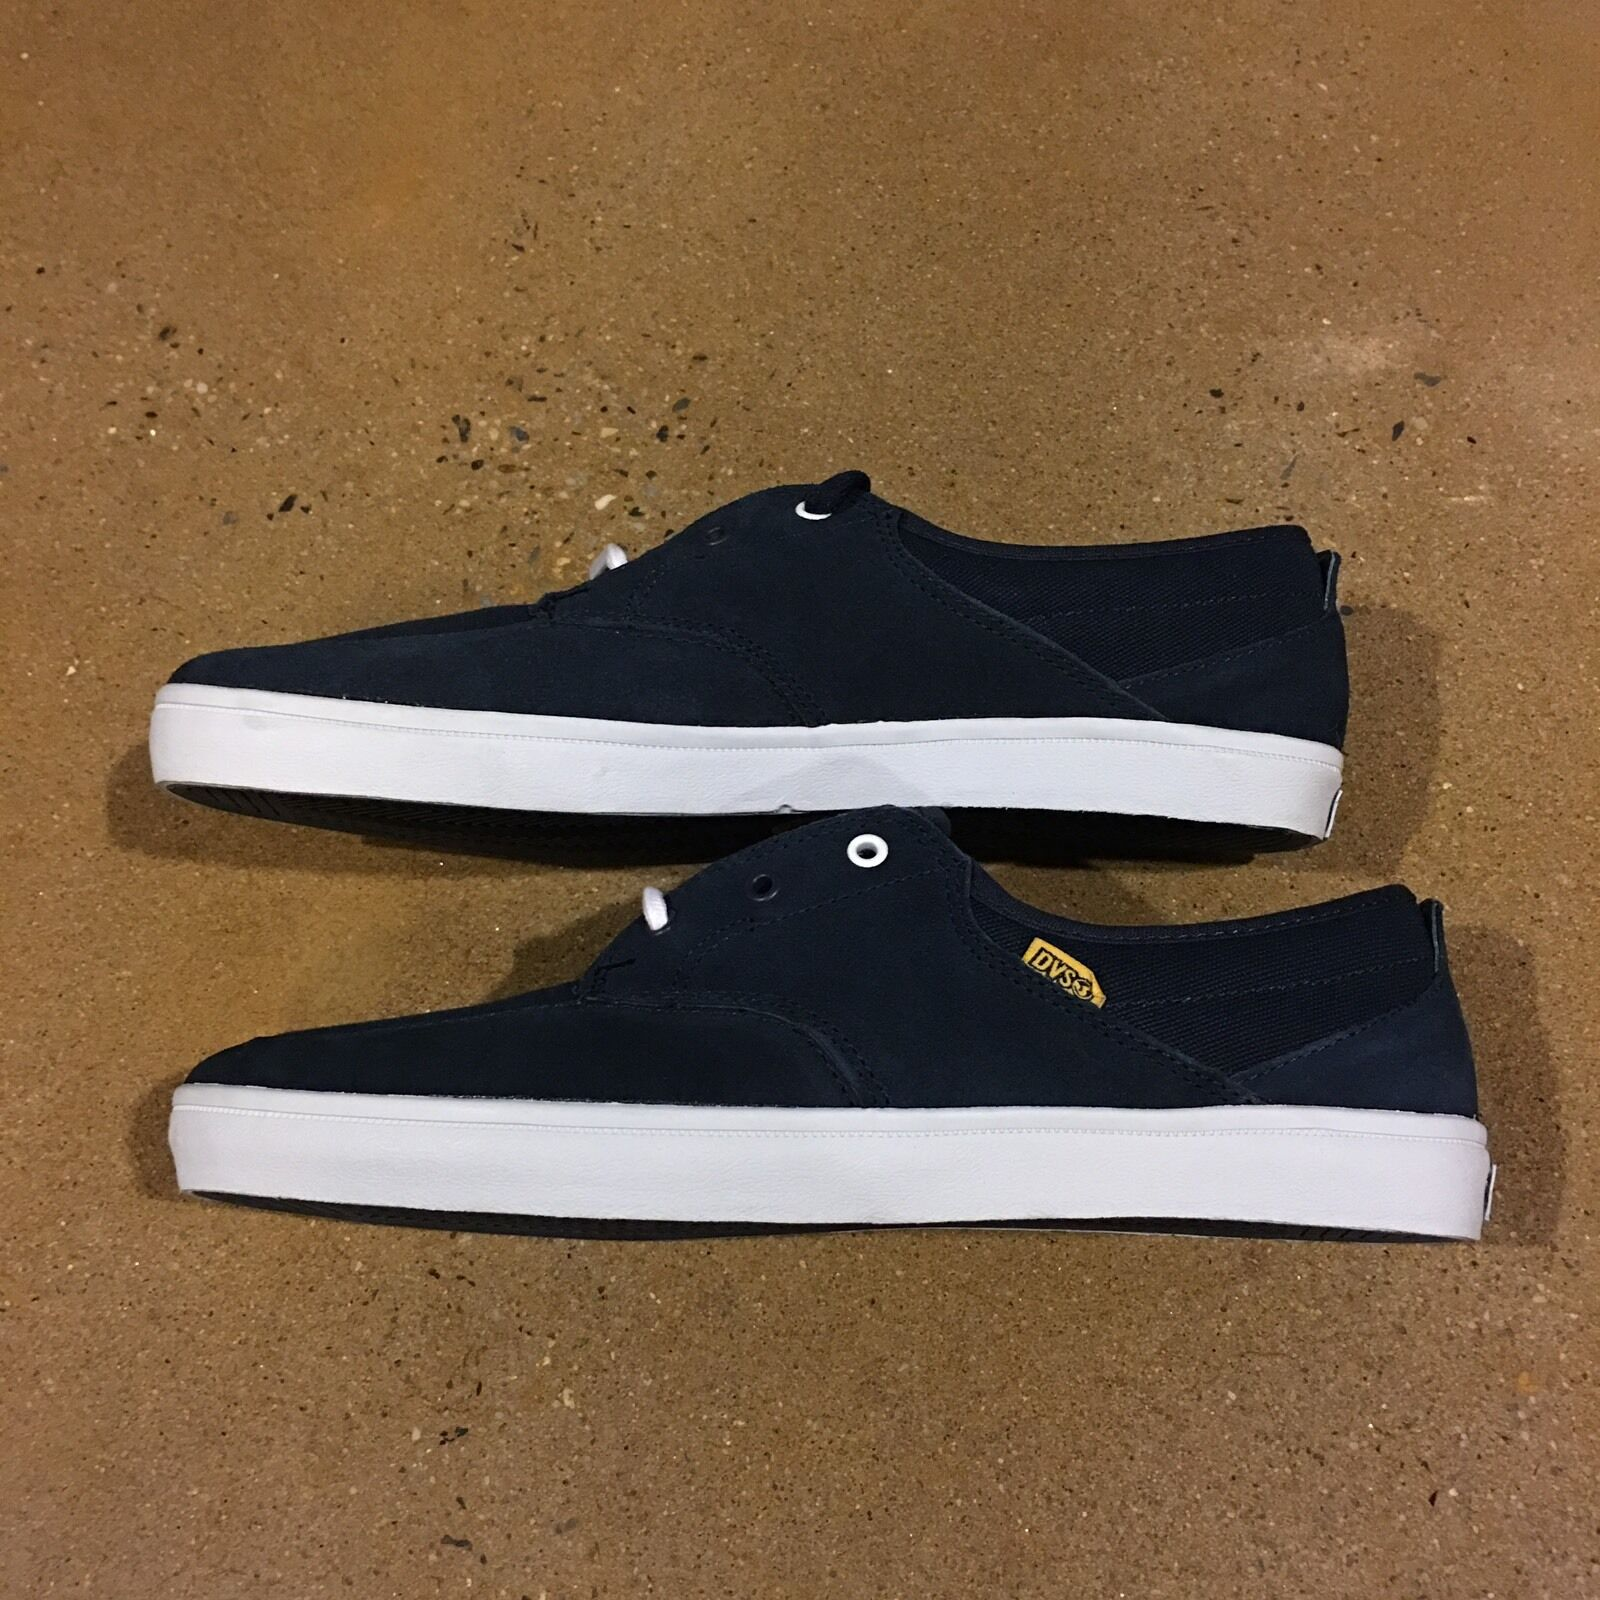 DVS Landmark Size 12 US Navy Suede BMX Shoes DC Skate Deck Boat Shoes BMX Sneakers 7ca900